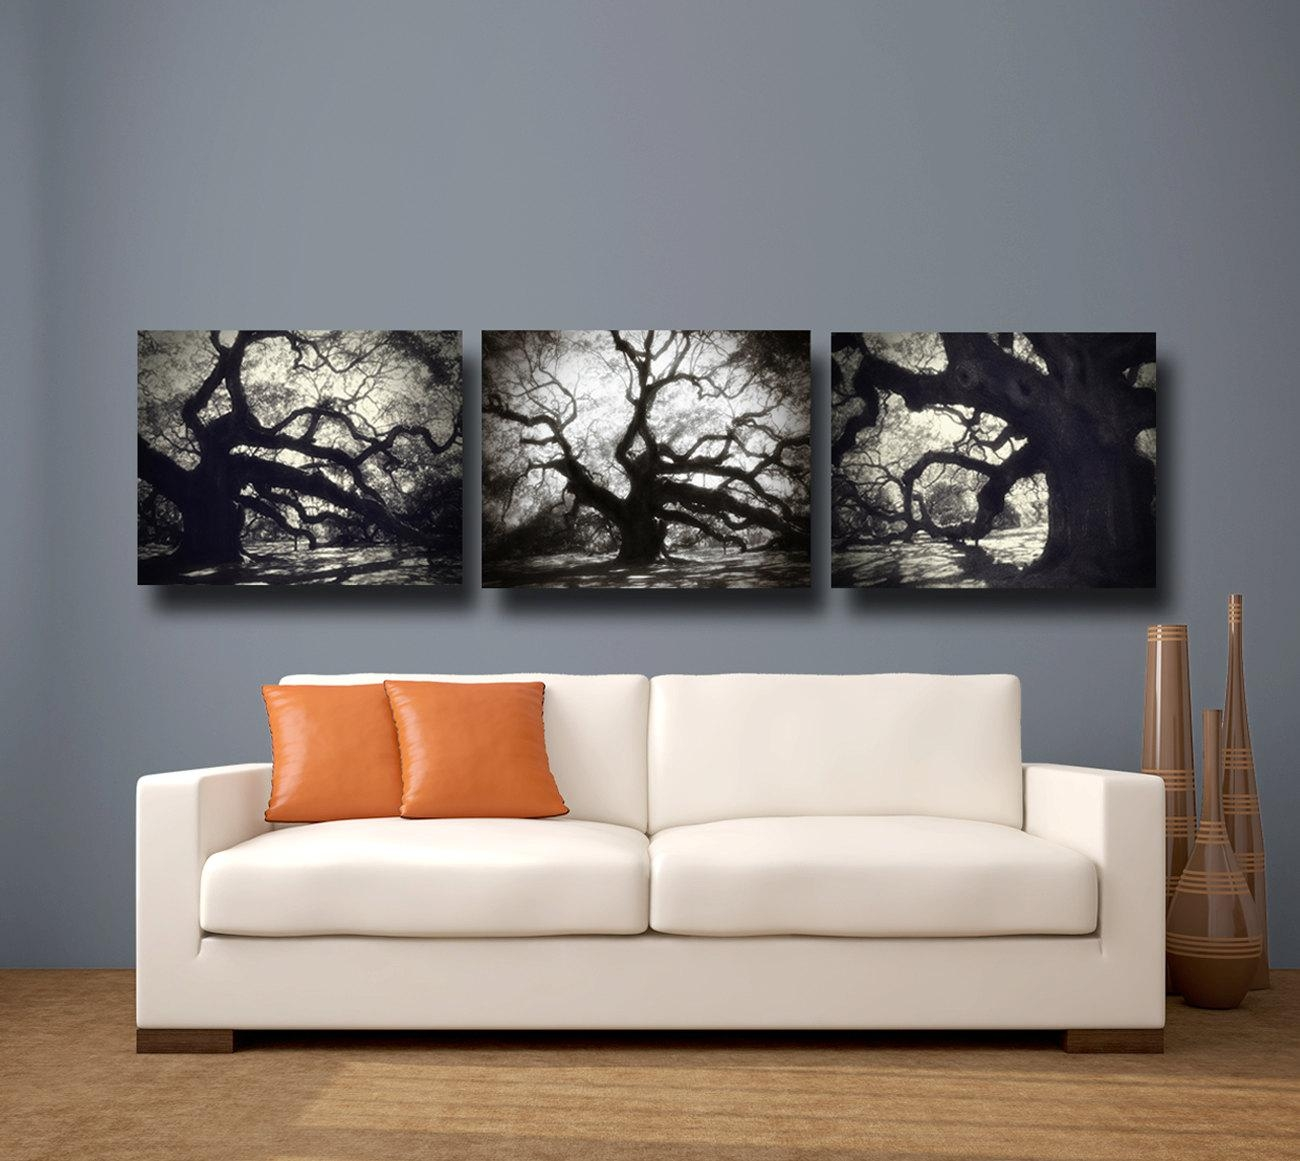 Wall Art Designs: Wall Canvas Art On Demand Free Printable Cheap With Regard To Cheap Wall Canvas Art (View 19 of 20)